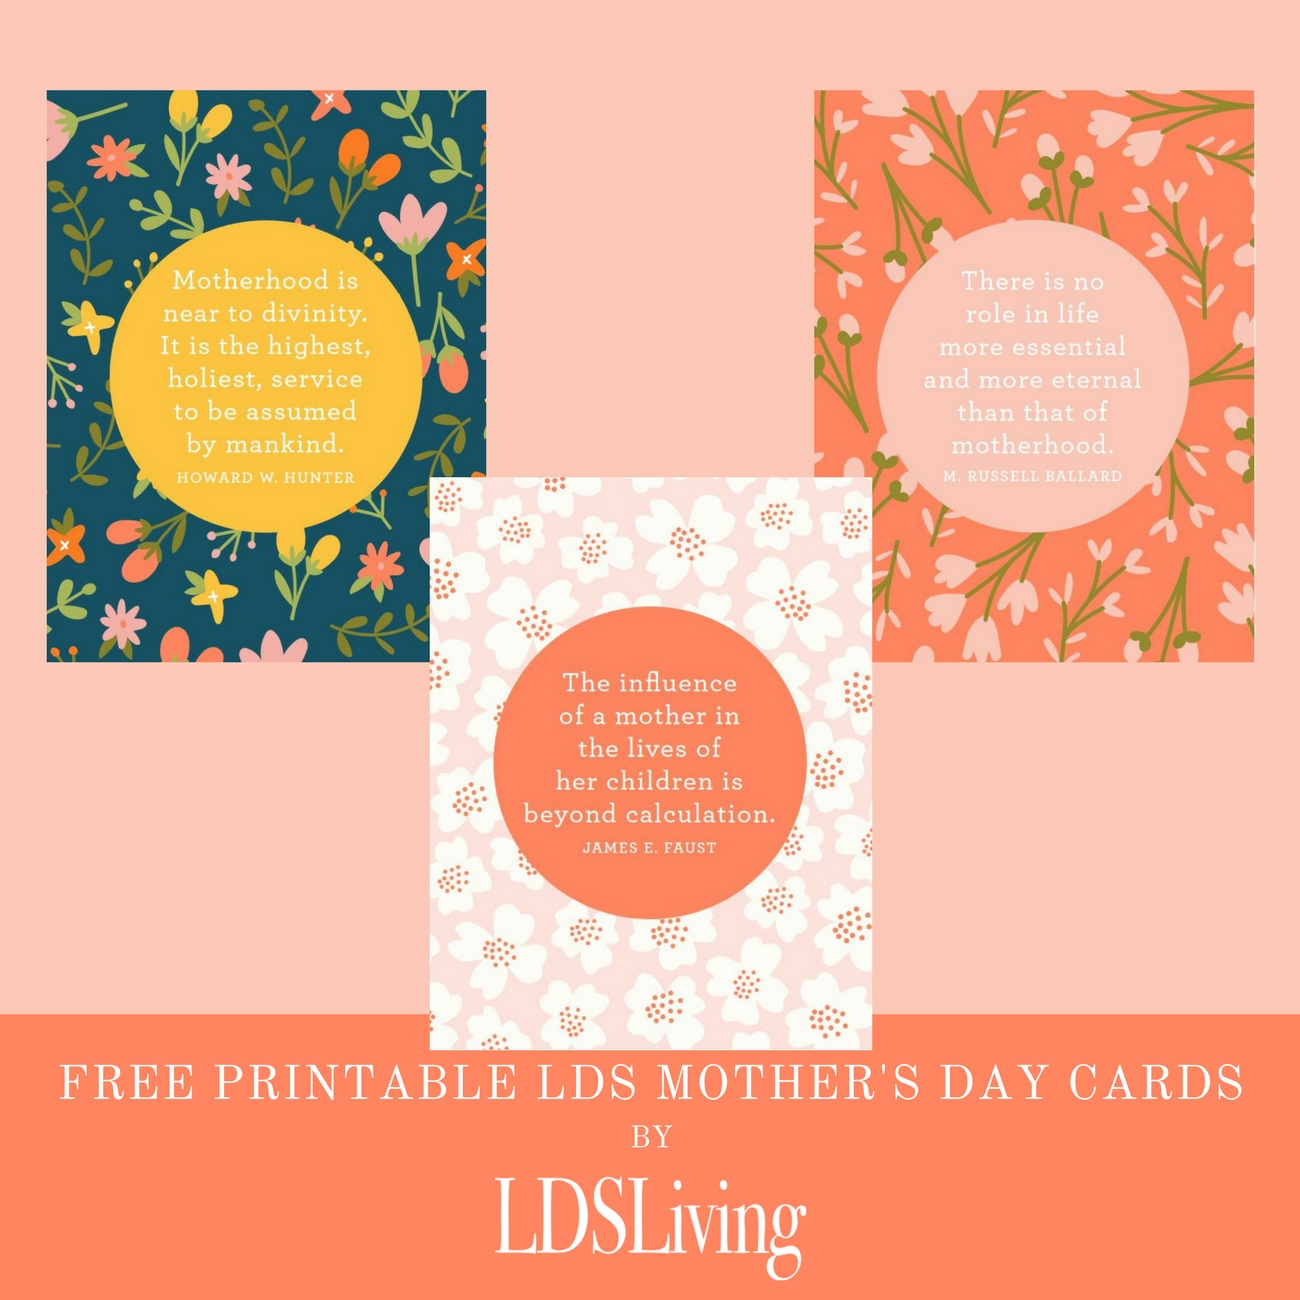 Diverting Our Friends At Lds Living Have Done Work Meaningful Day Gift Ideas Free Printable Personal You This Day Withthis List Thoughtful Gifts To Celebrate Women gifts Thoughtful Gifts For Her